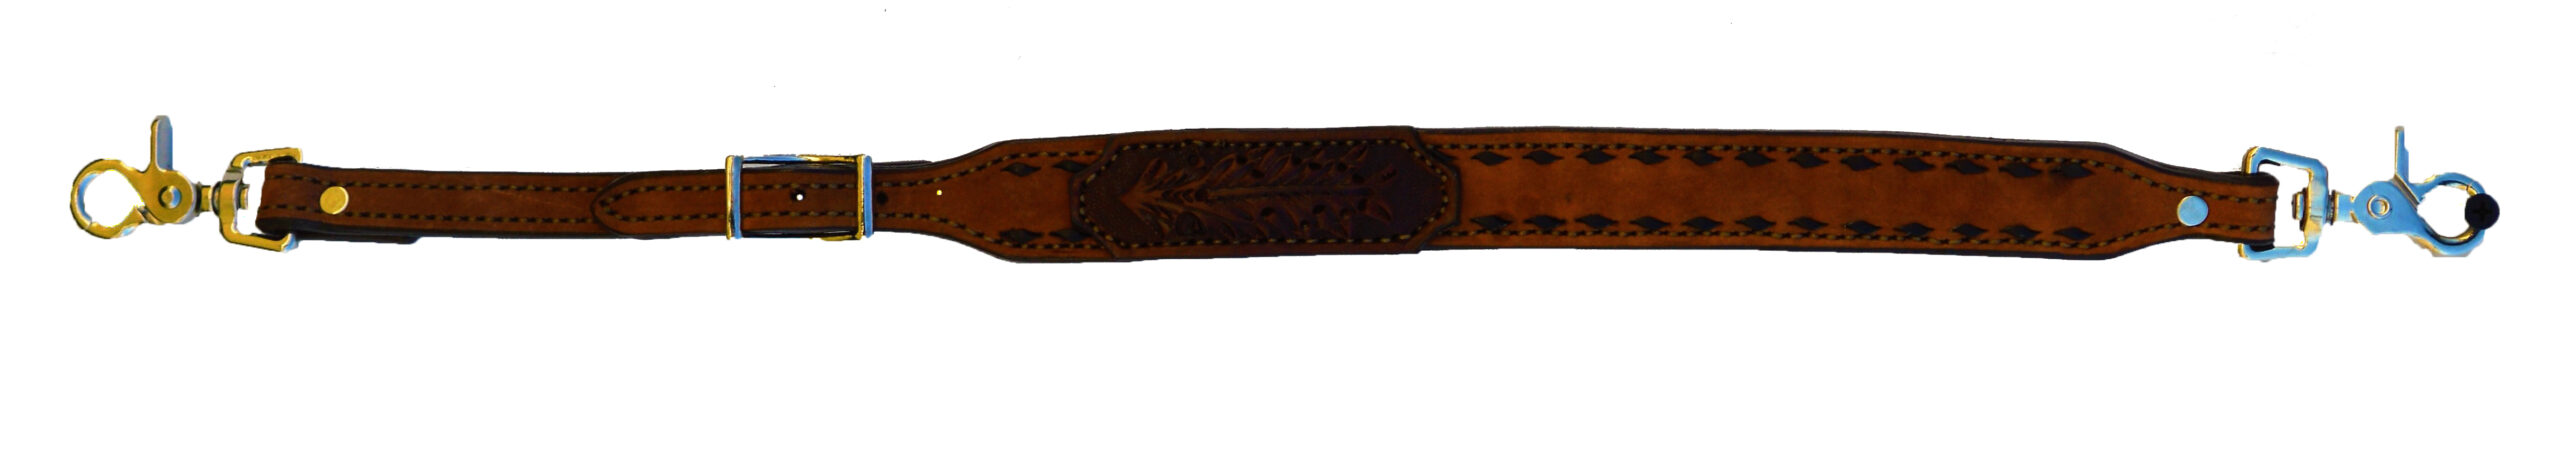 200-AO WITHER STRAP ROUGH OUT TOAST LEATHER WITH CHOCOLATE TOOLED PATCH